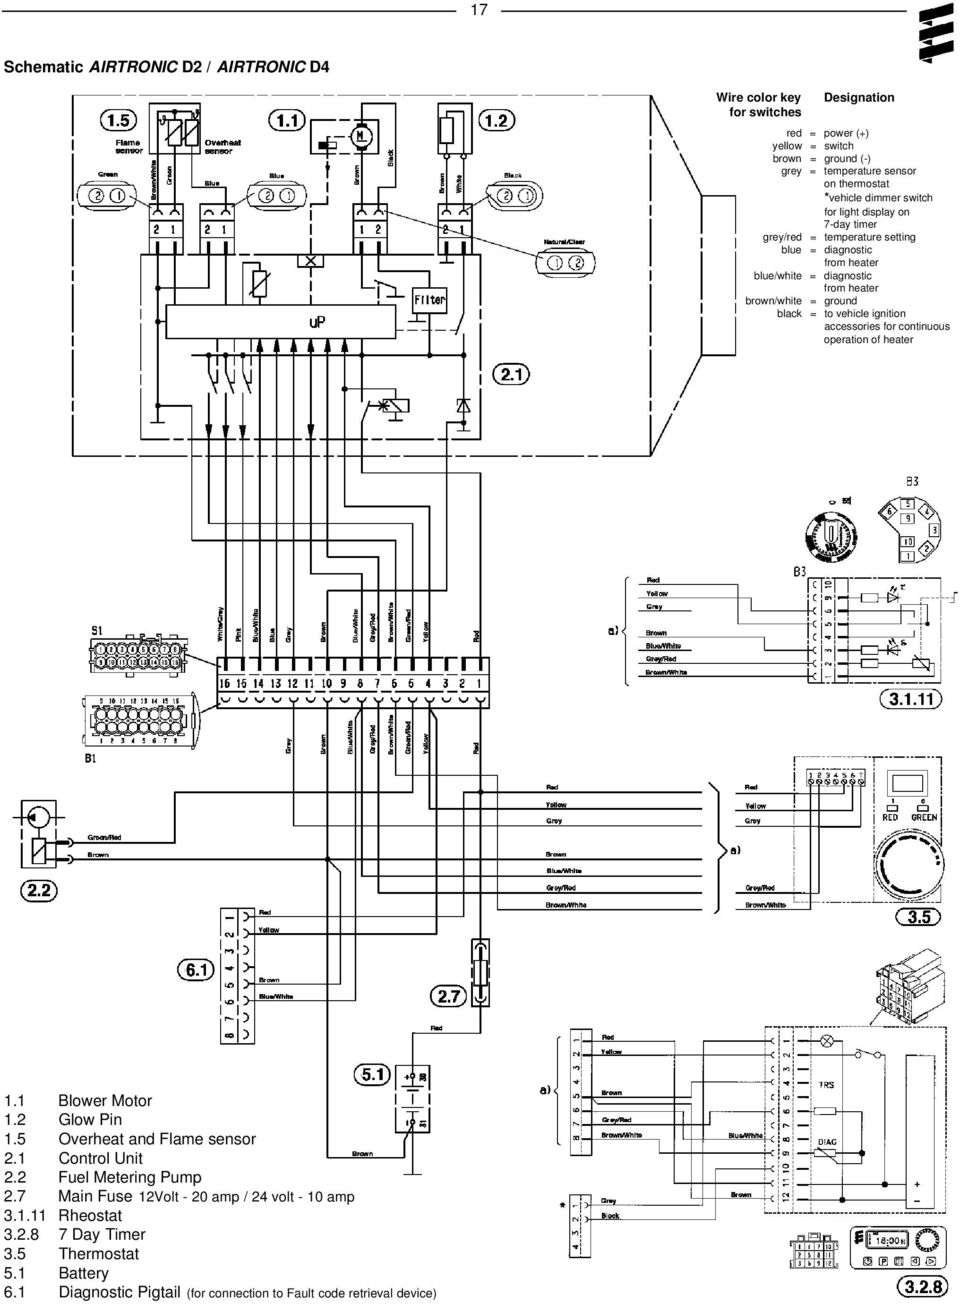 [ZB_5045] Airtronic D2 Wiring Diagram Wiring Diagram